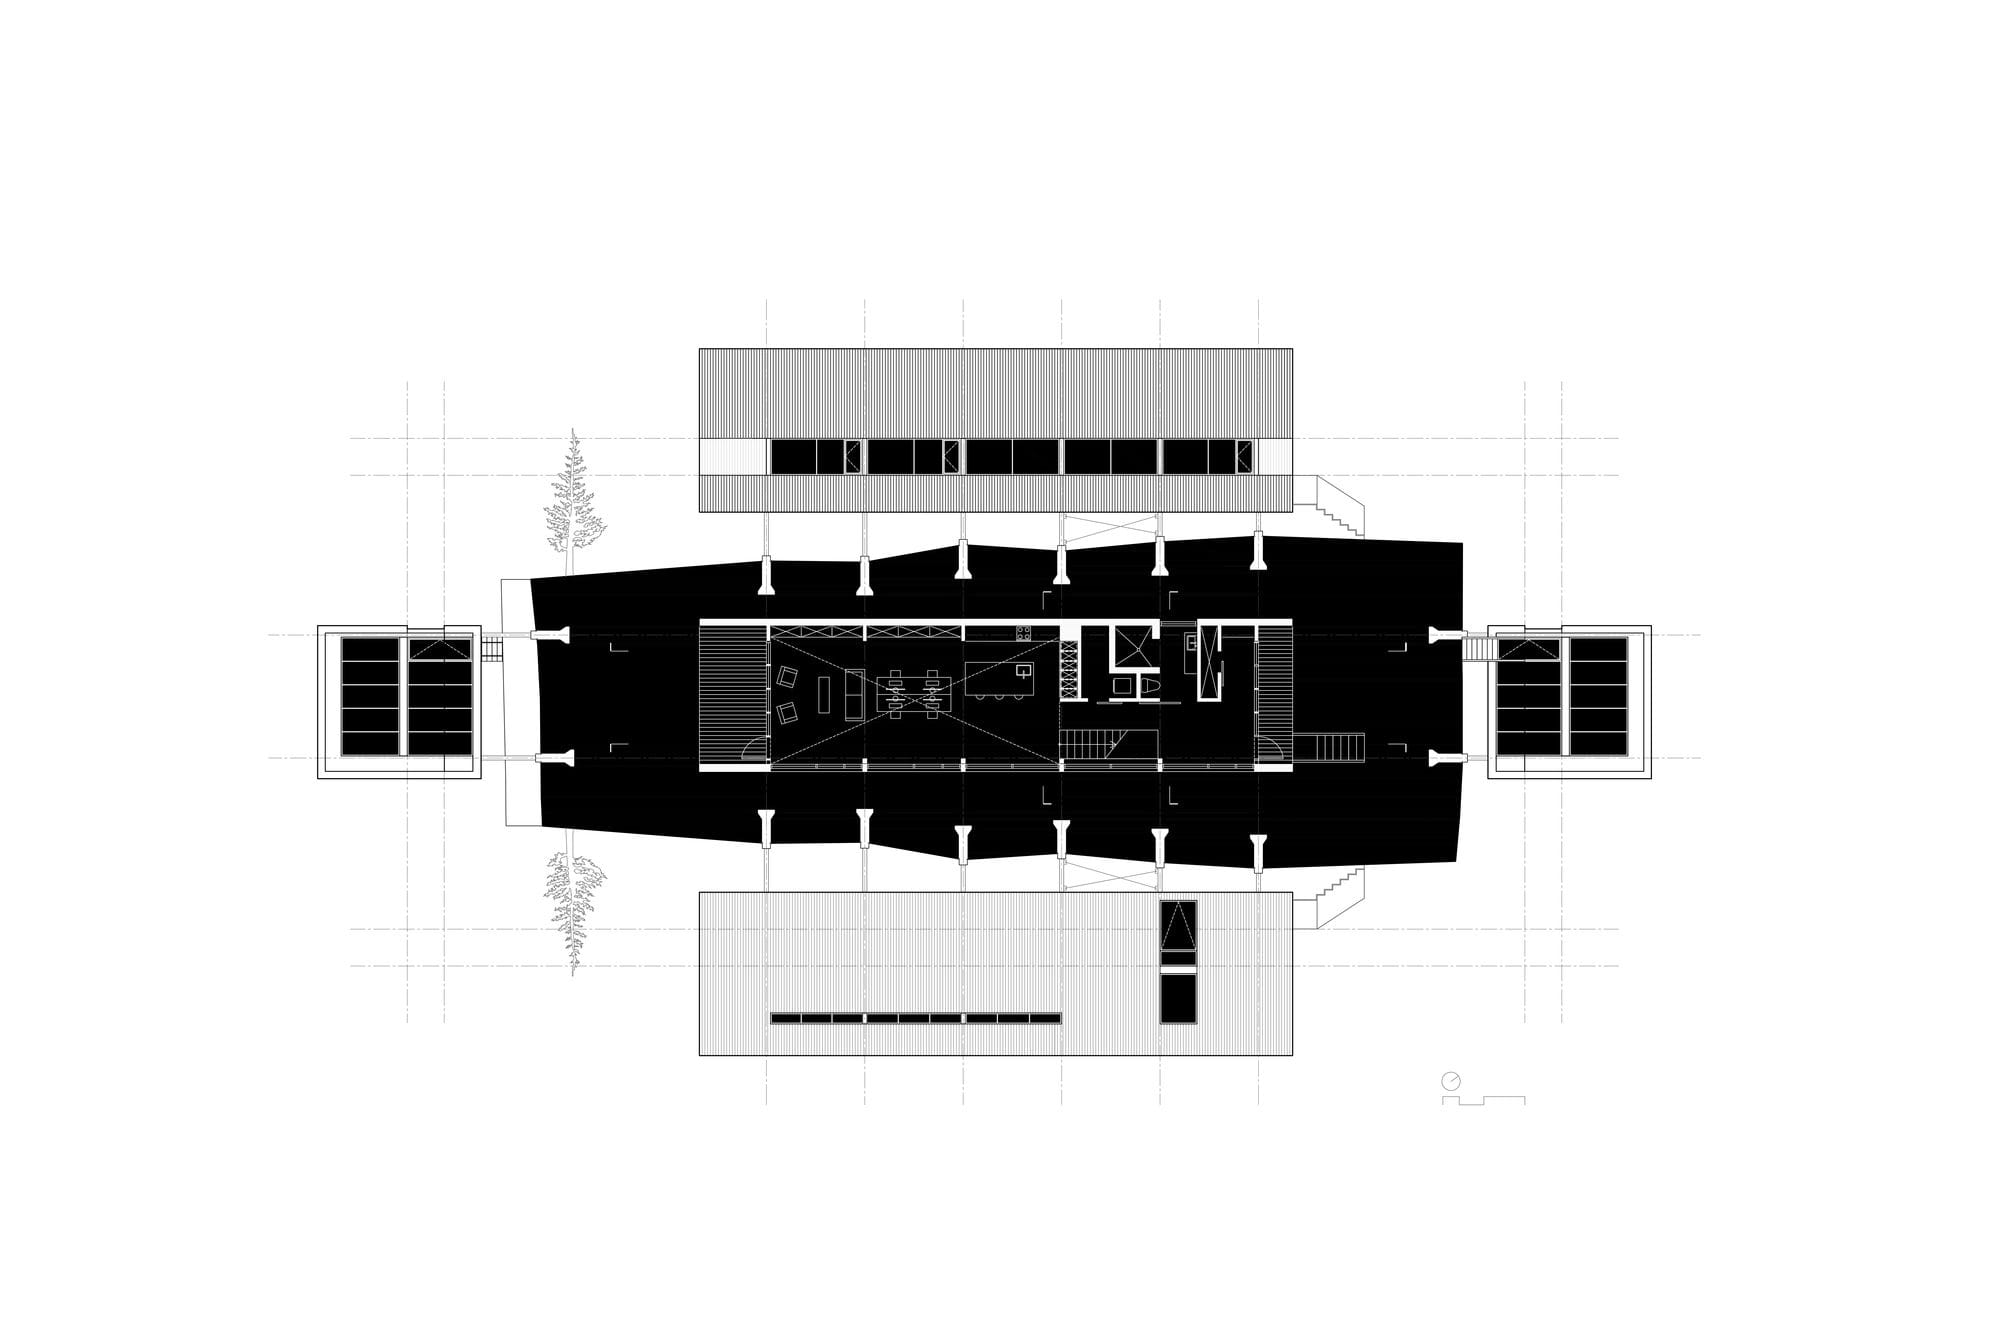 Дом с офисом архитектора в Канаде от студии Peter Braithwaite Studio, HQ architecture, HQarch, HQ arch, high quality architecture